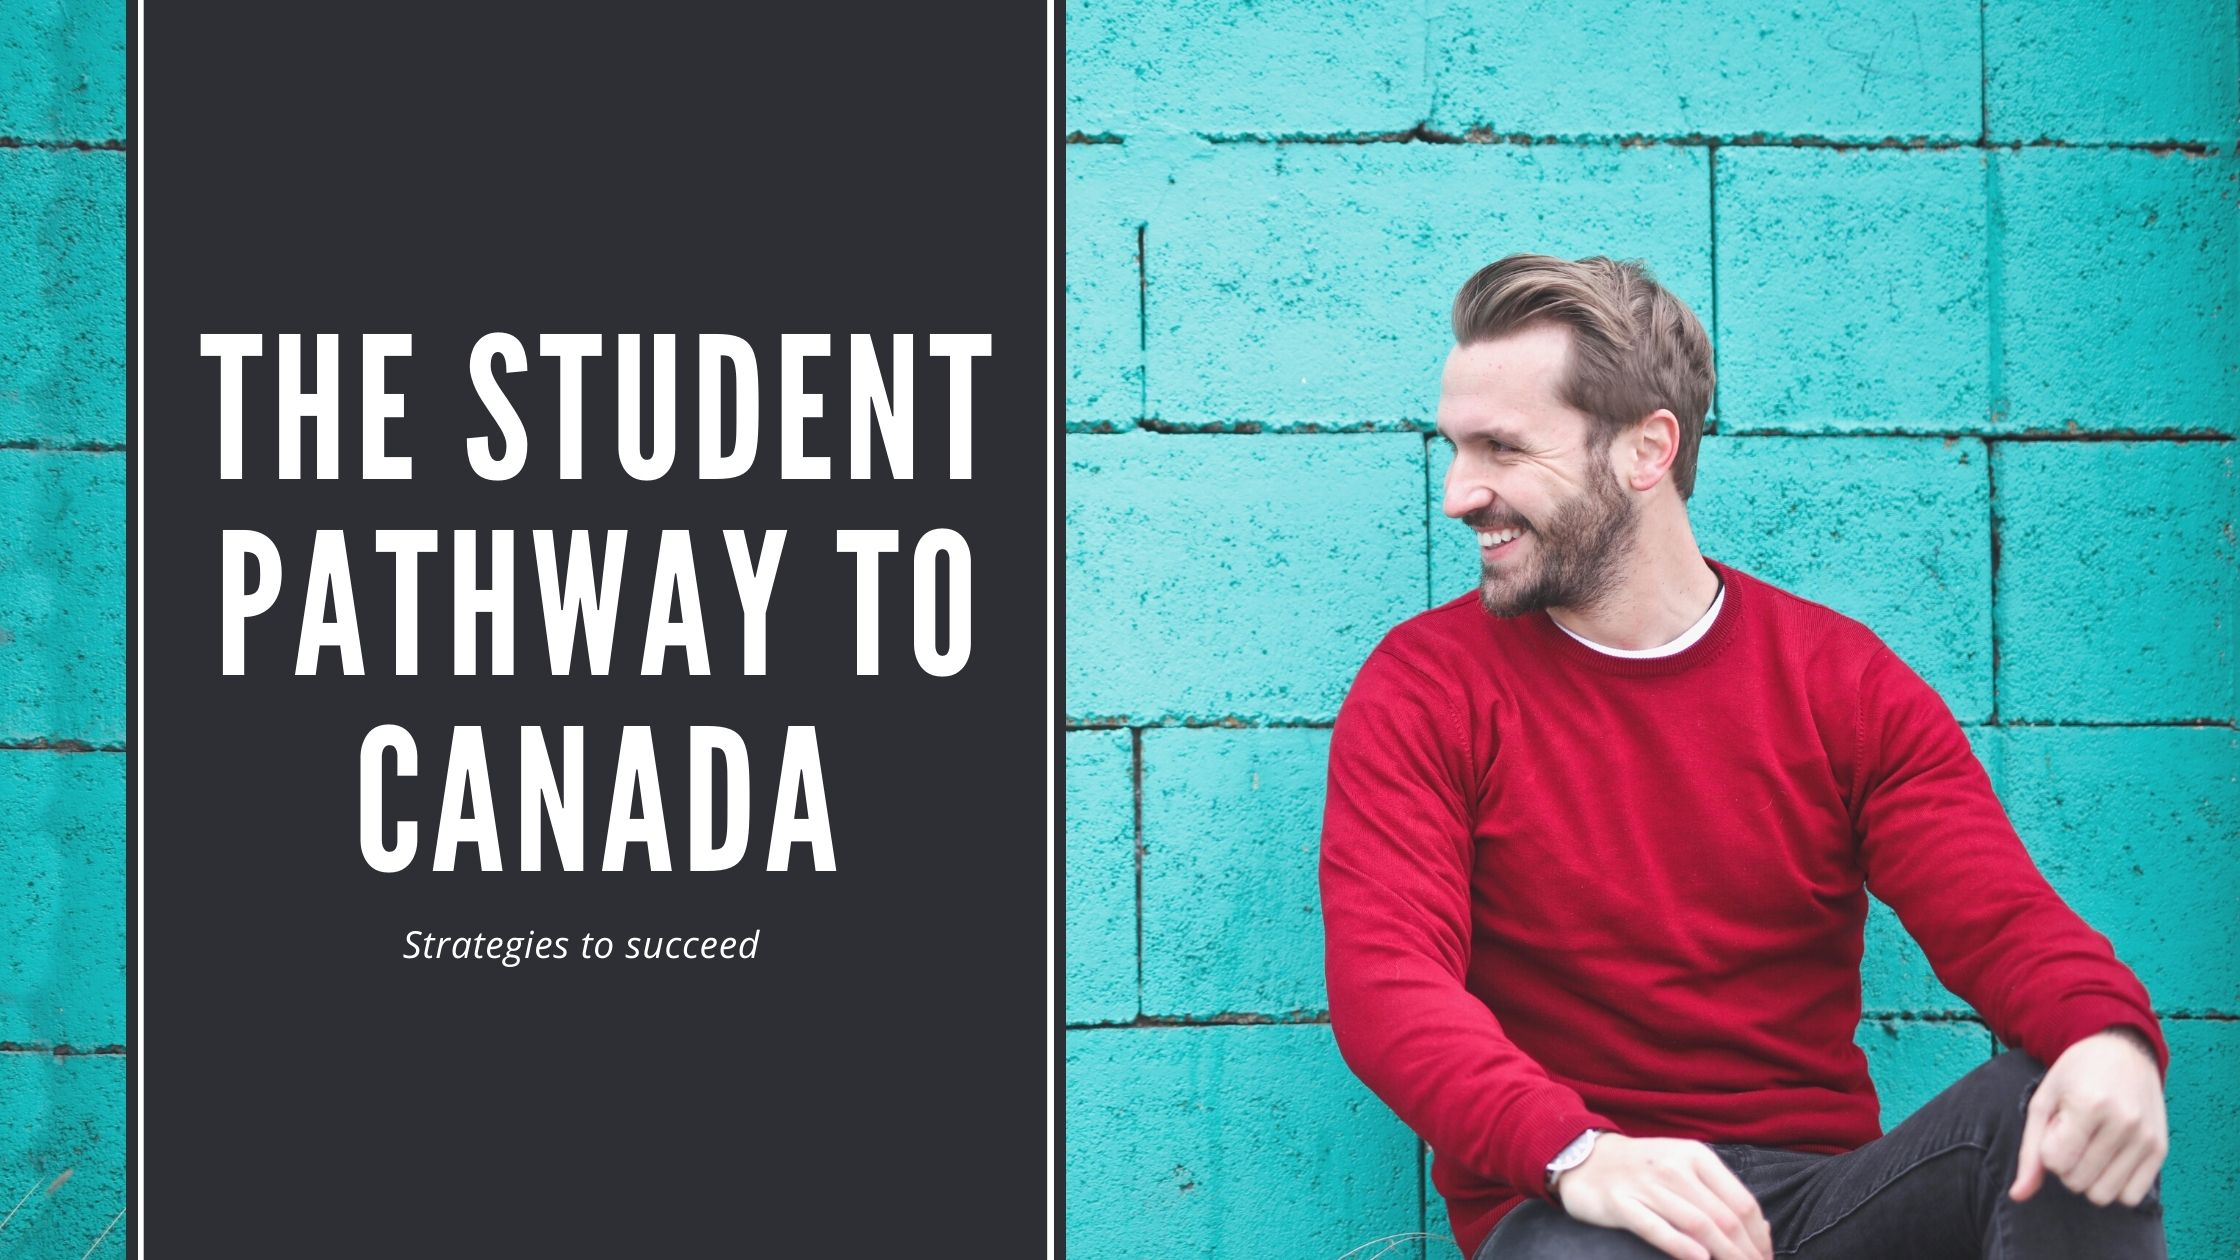 The student pathway to Canada in 2021: Strategies to succeed